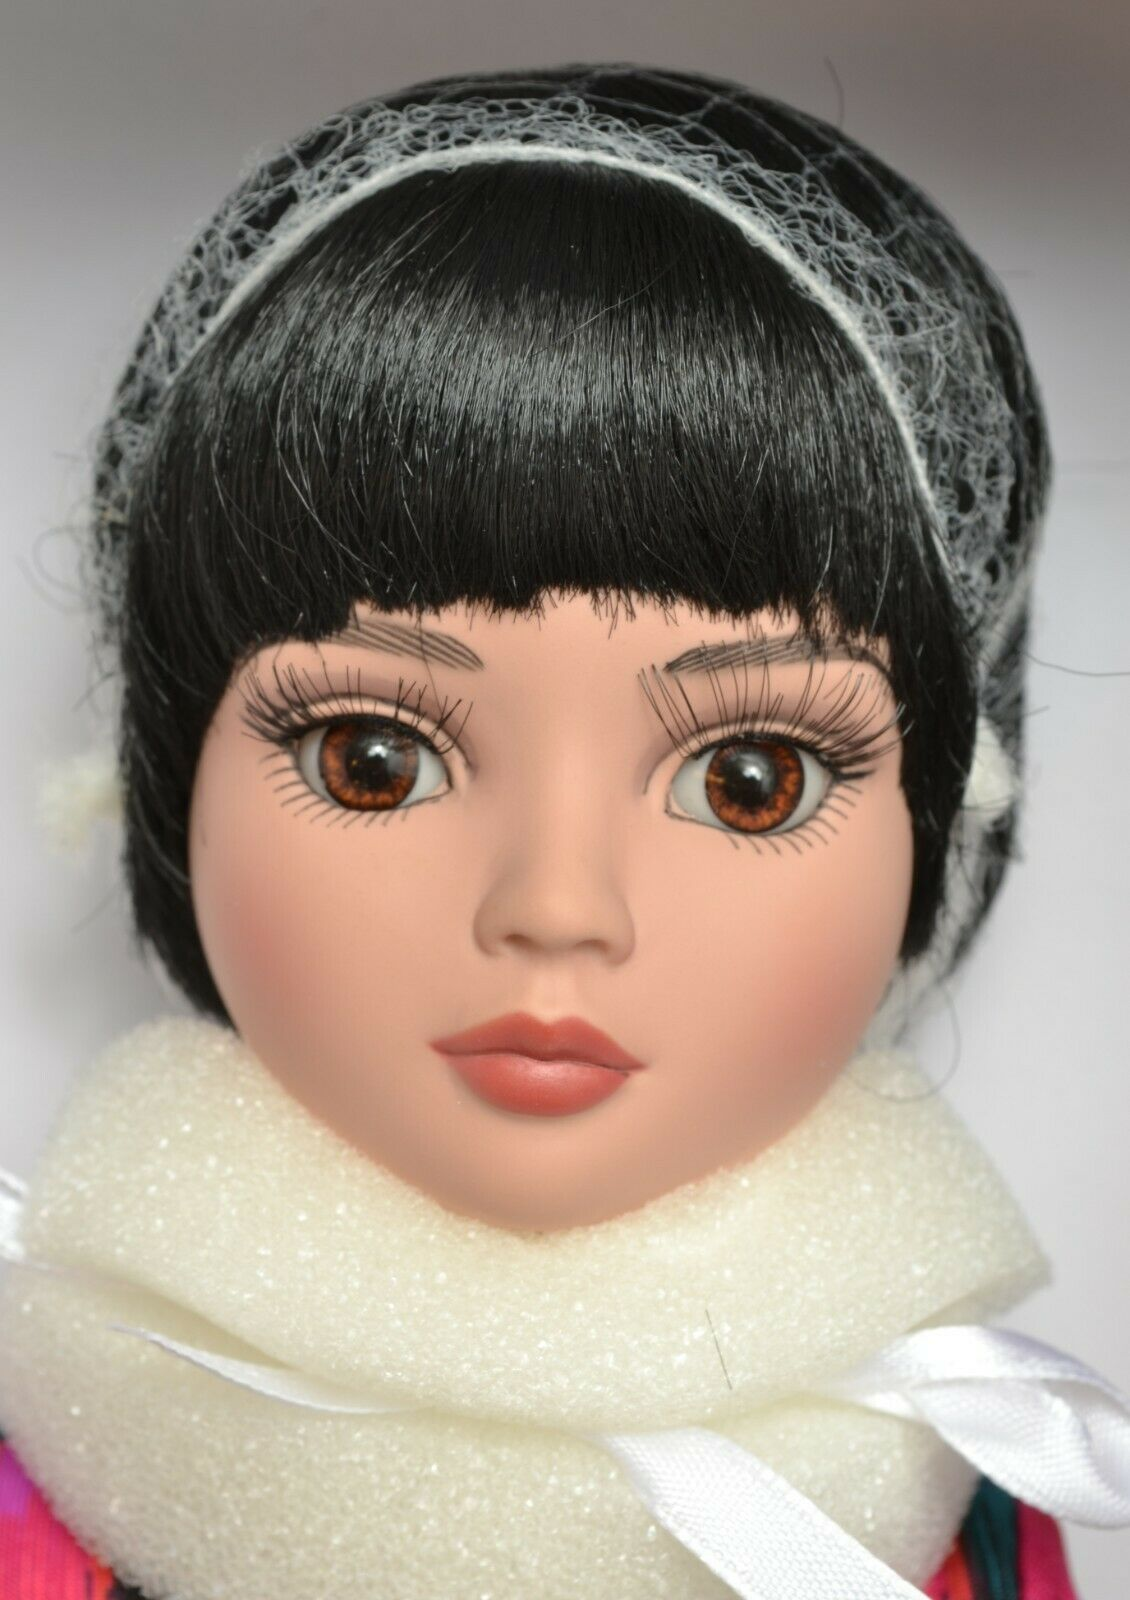 Wilde Imagination Ellowyne Seventies Sweet DRESSED DOLL New  SOLD OUT at Wilde